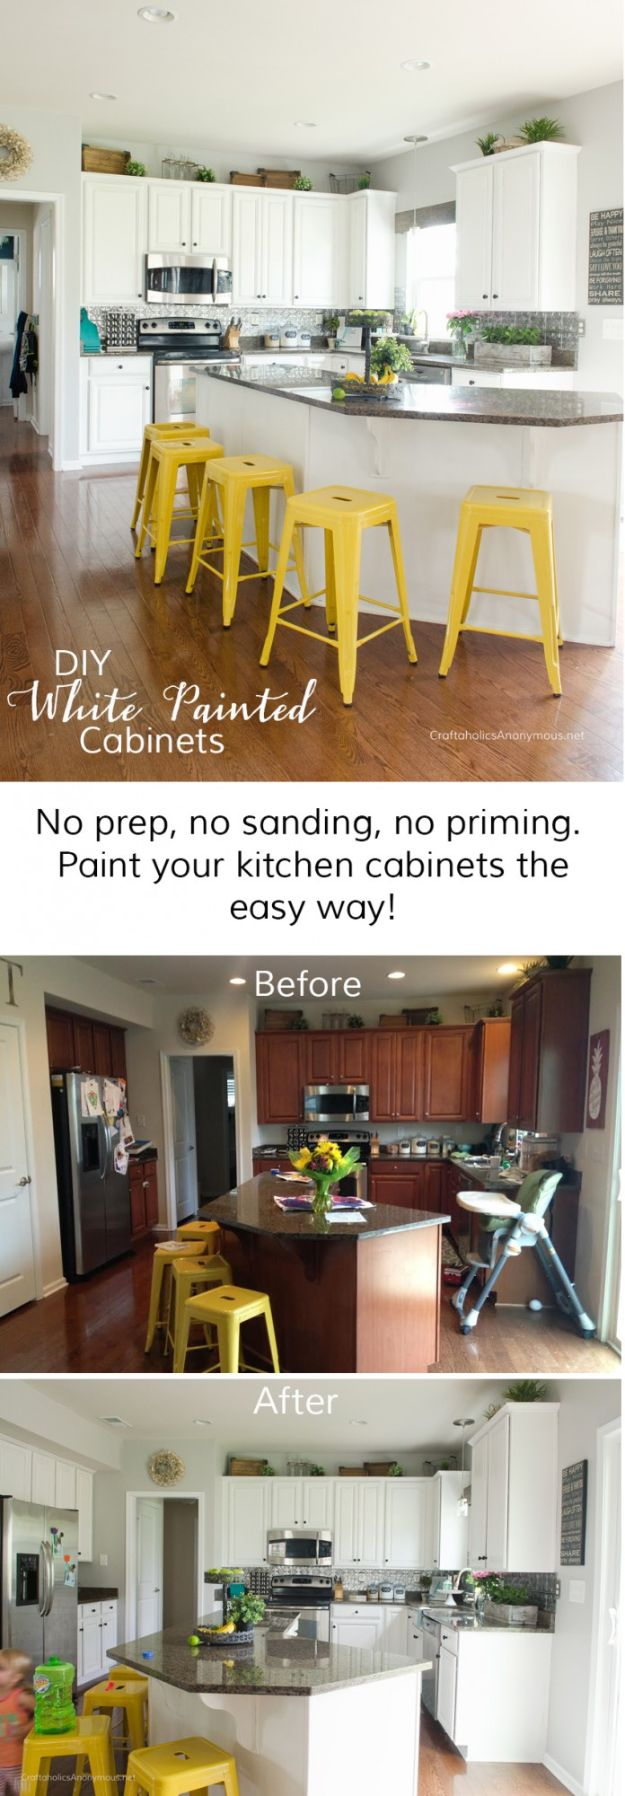 DIY Kitchen Cabinet Ideas - Paint Kitchen Cabinets with Chalk Paint - Makeover and Before and After - How To Build, Plan and Renovate Your Kitchen Cabinets - Painted, Cheap Refact, Free Plans, Rustic Decor, Farmhouse and Vintage Looks, Modern Design and Inexpensive Budget Friendly Projects